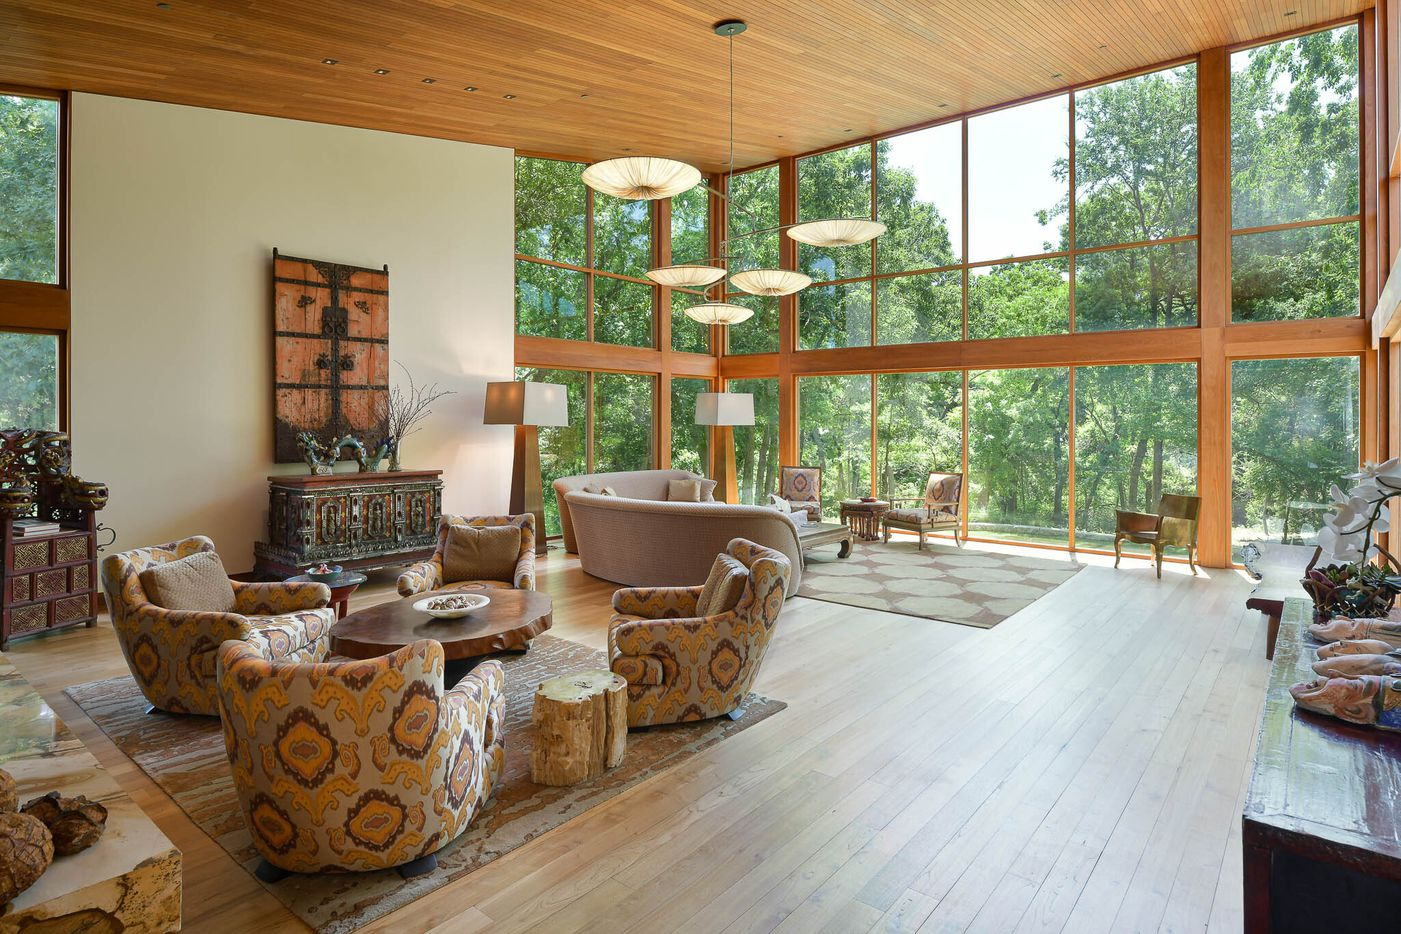 Take a look at the home at 5656 Celestial Road in Dallas.